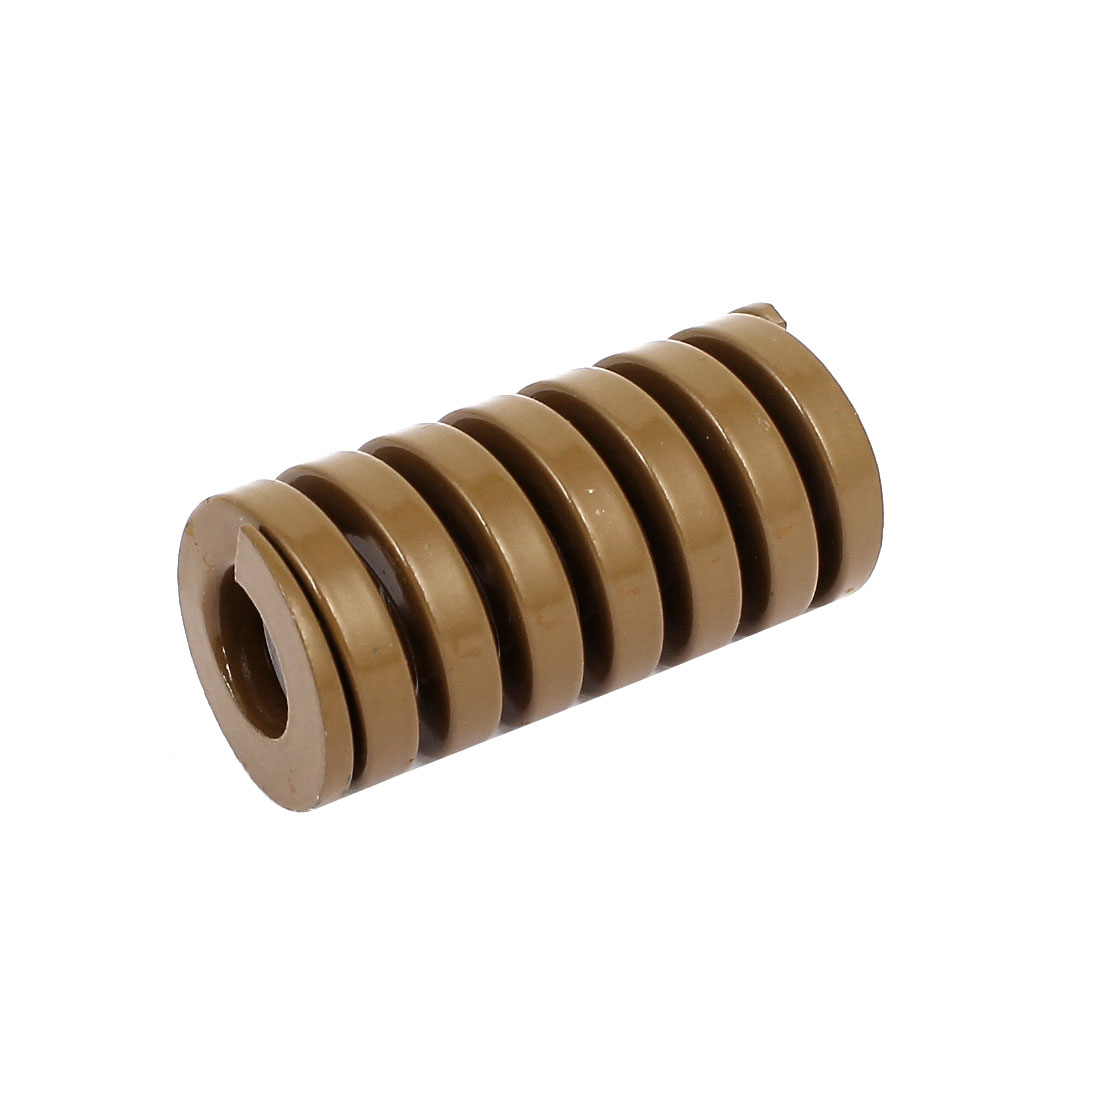 25mm OD 50mm Long Heavy Load Coil Stamping Compression Mold Die Spring Brown